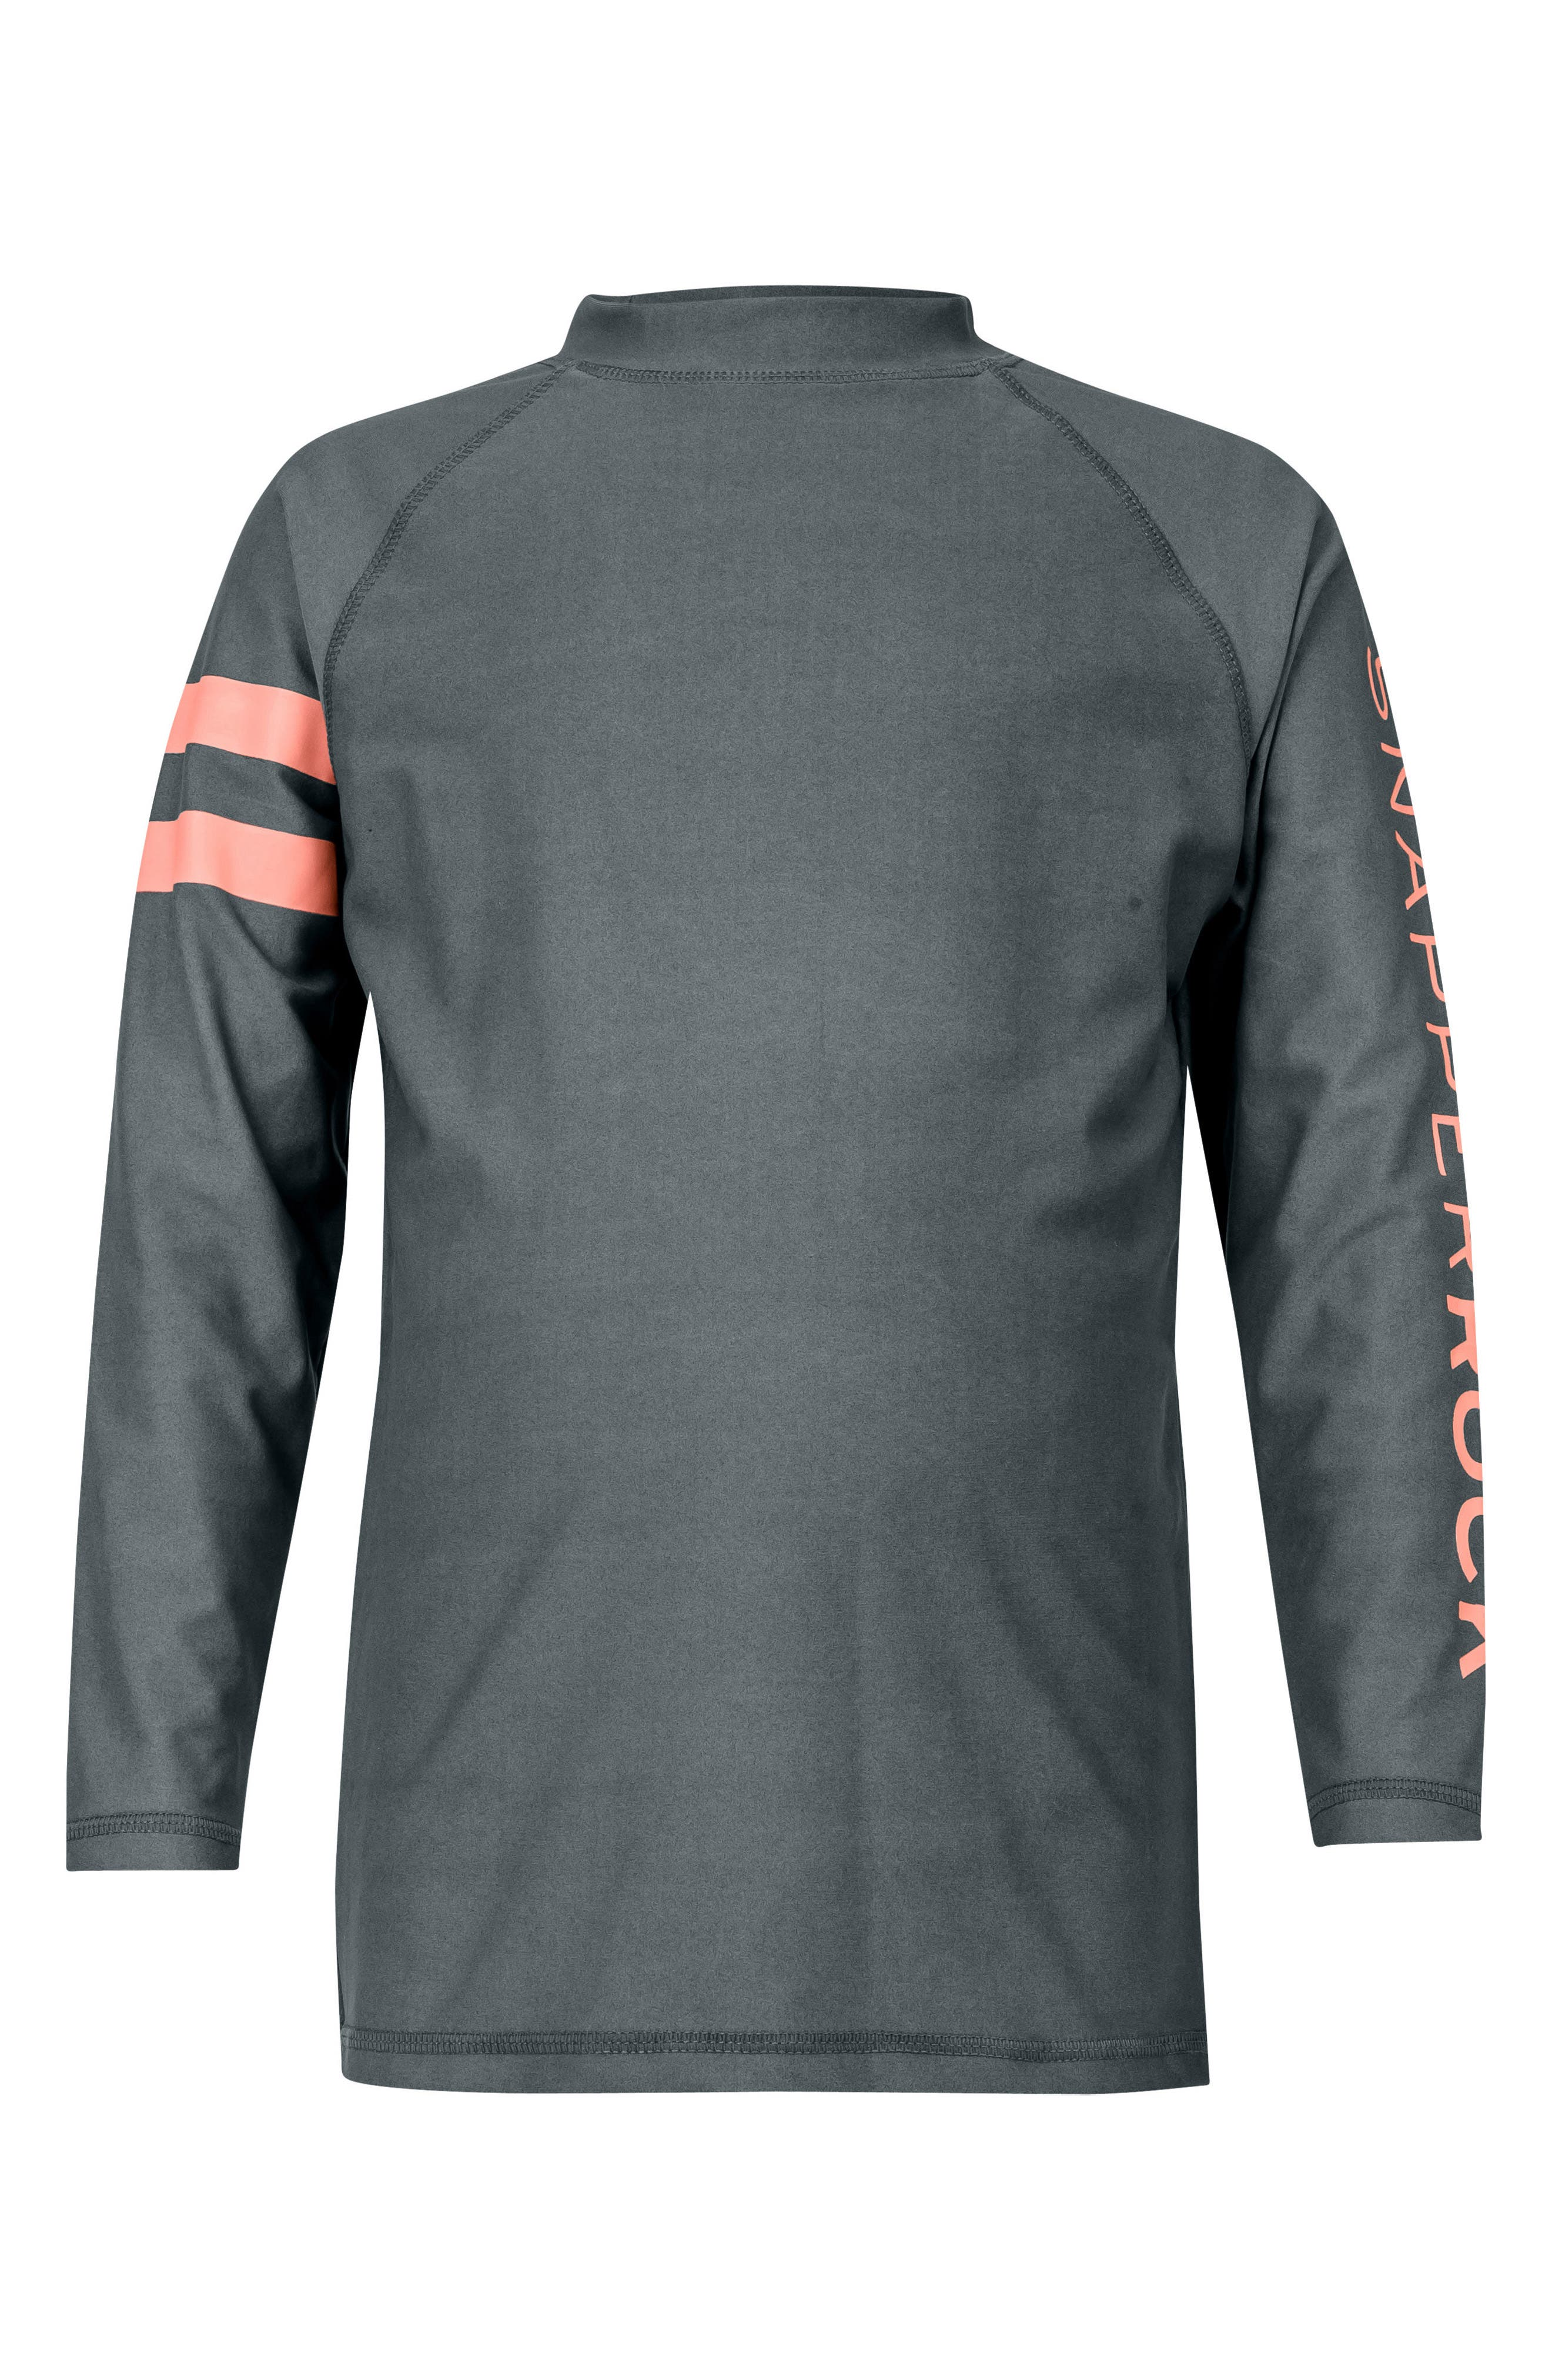 SNAPPER ROCK,                             Raglan Long Sleeve Rashguard,                             Main thumbnail 1, color,                             030